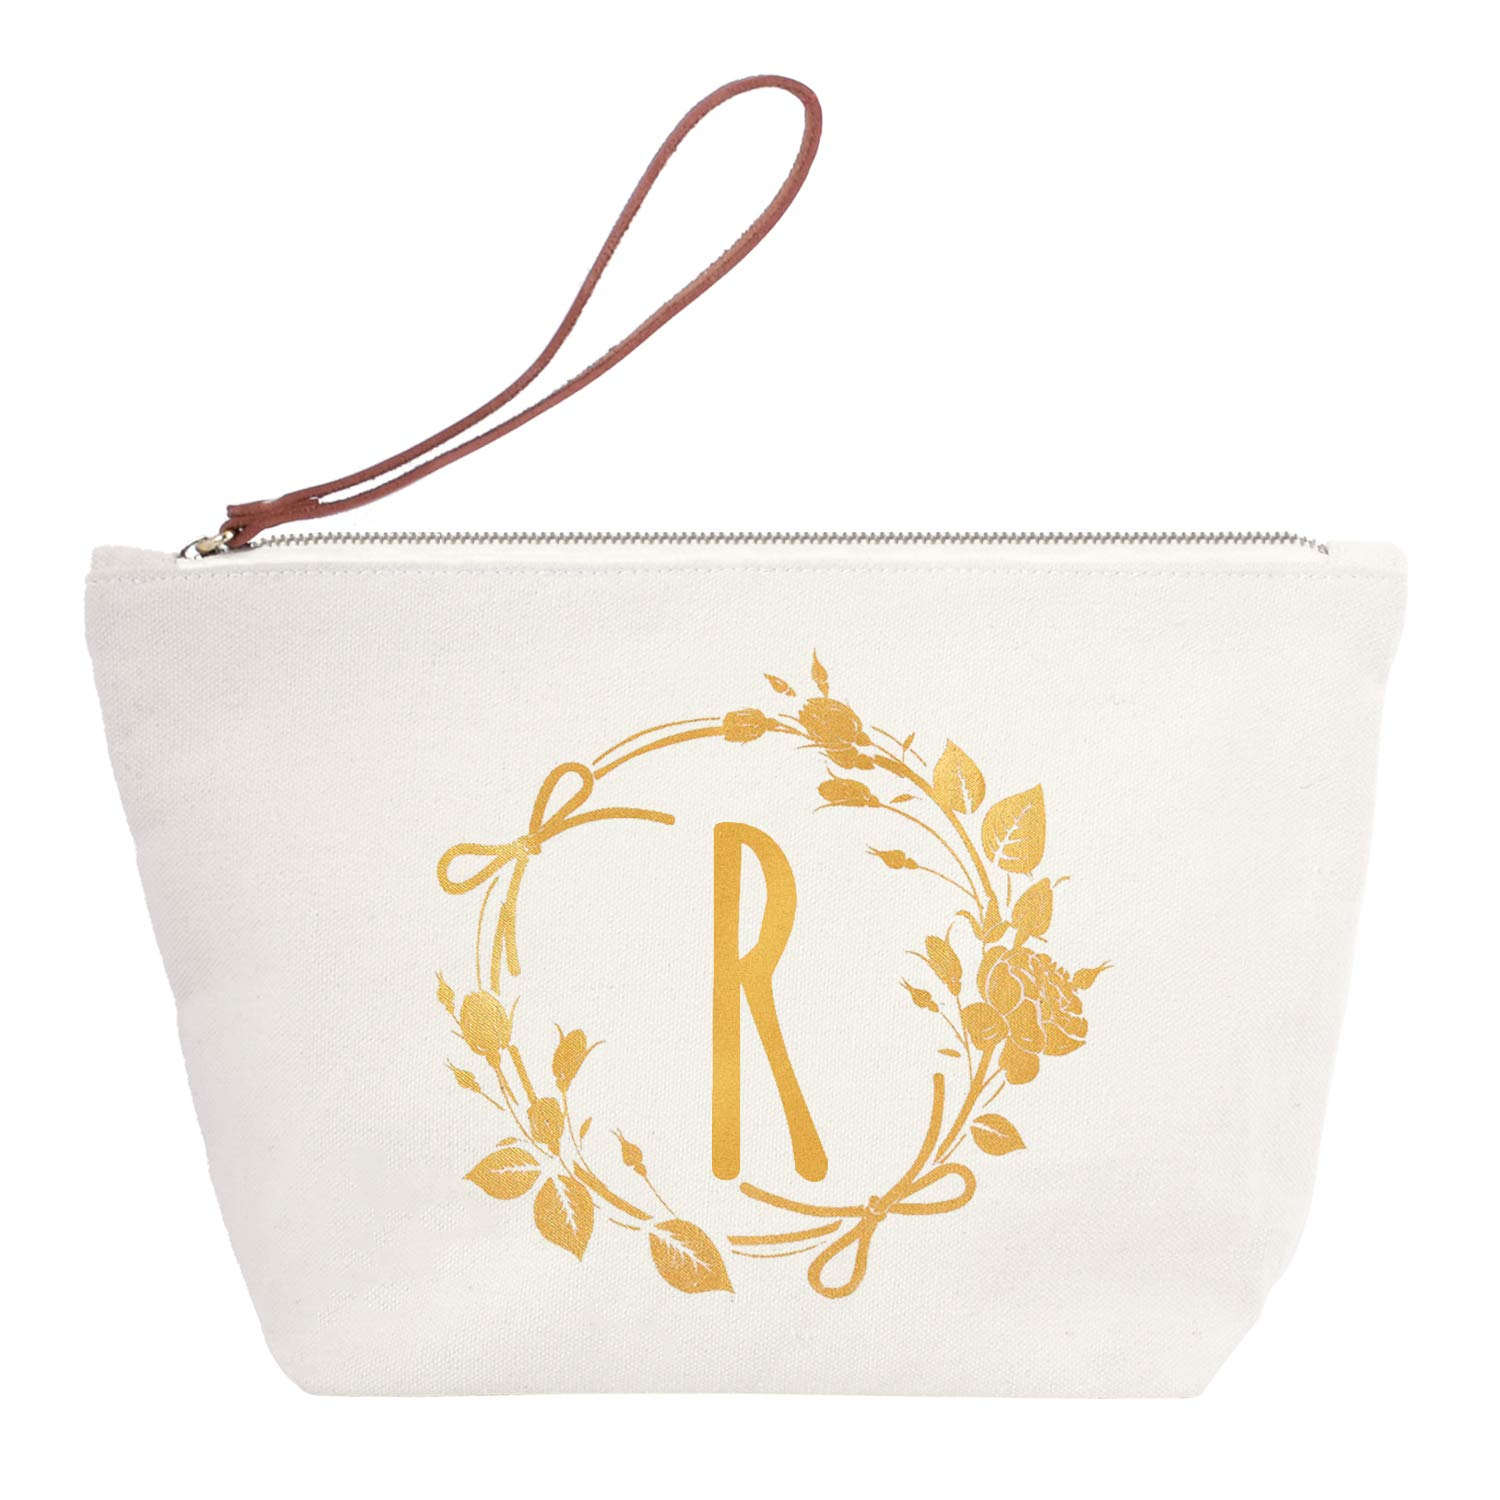 ElegantPark R Initial Monogram Personalized Travel Makeup Cosmetic Bag Wristlet Pouch Gifts with Zipper Canvas